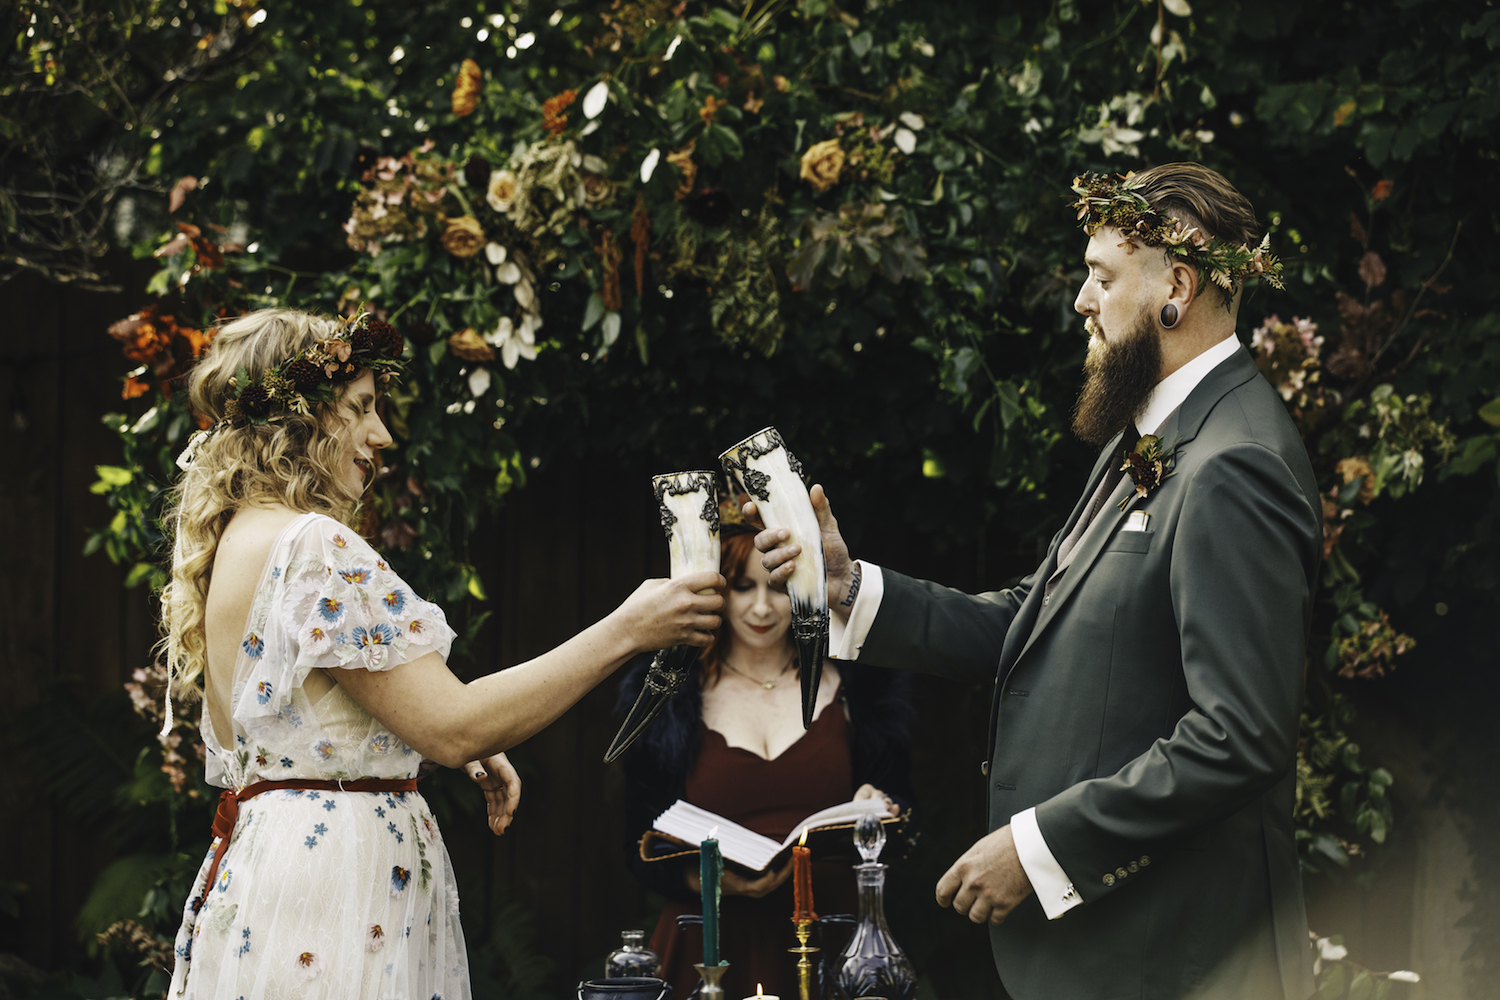 Bride and groom toasting to each other at alter